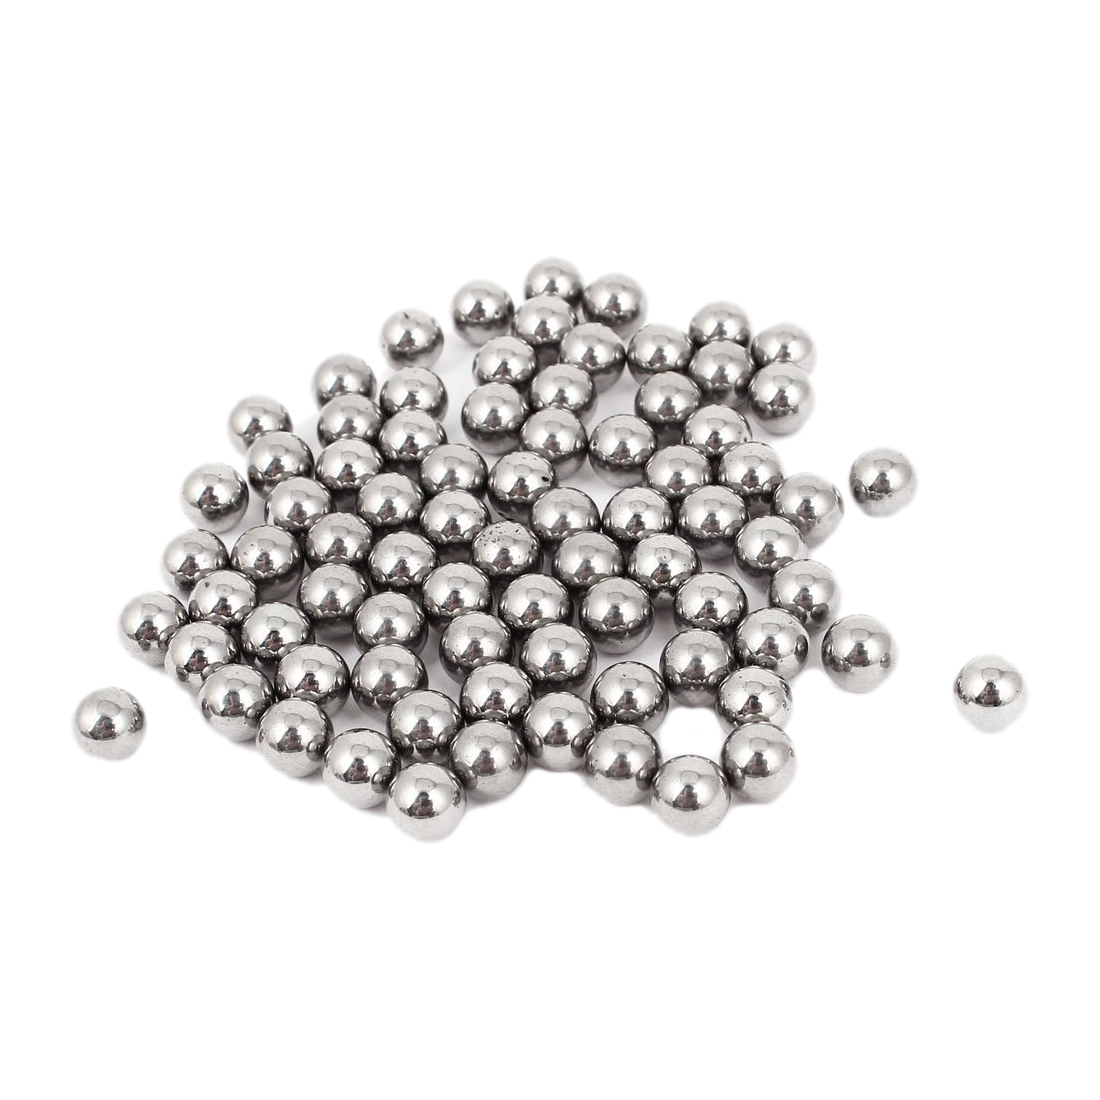 80 Pieces Bicycle Wheel Impeller Carbon Steel Ball Bearing 6mm Diameter Bicycle Parts In